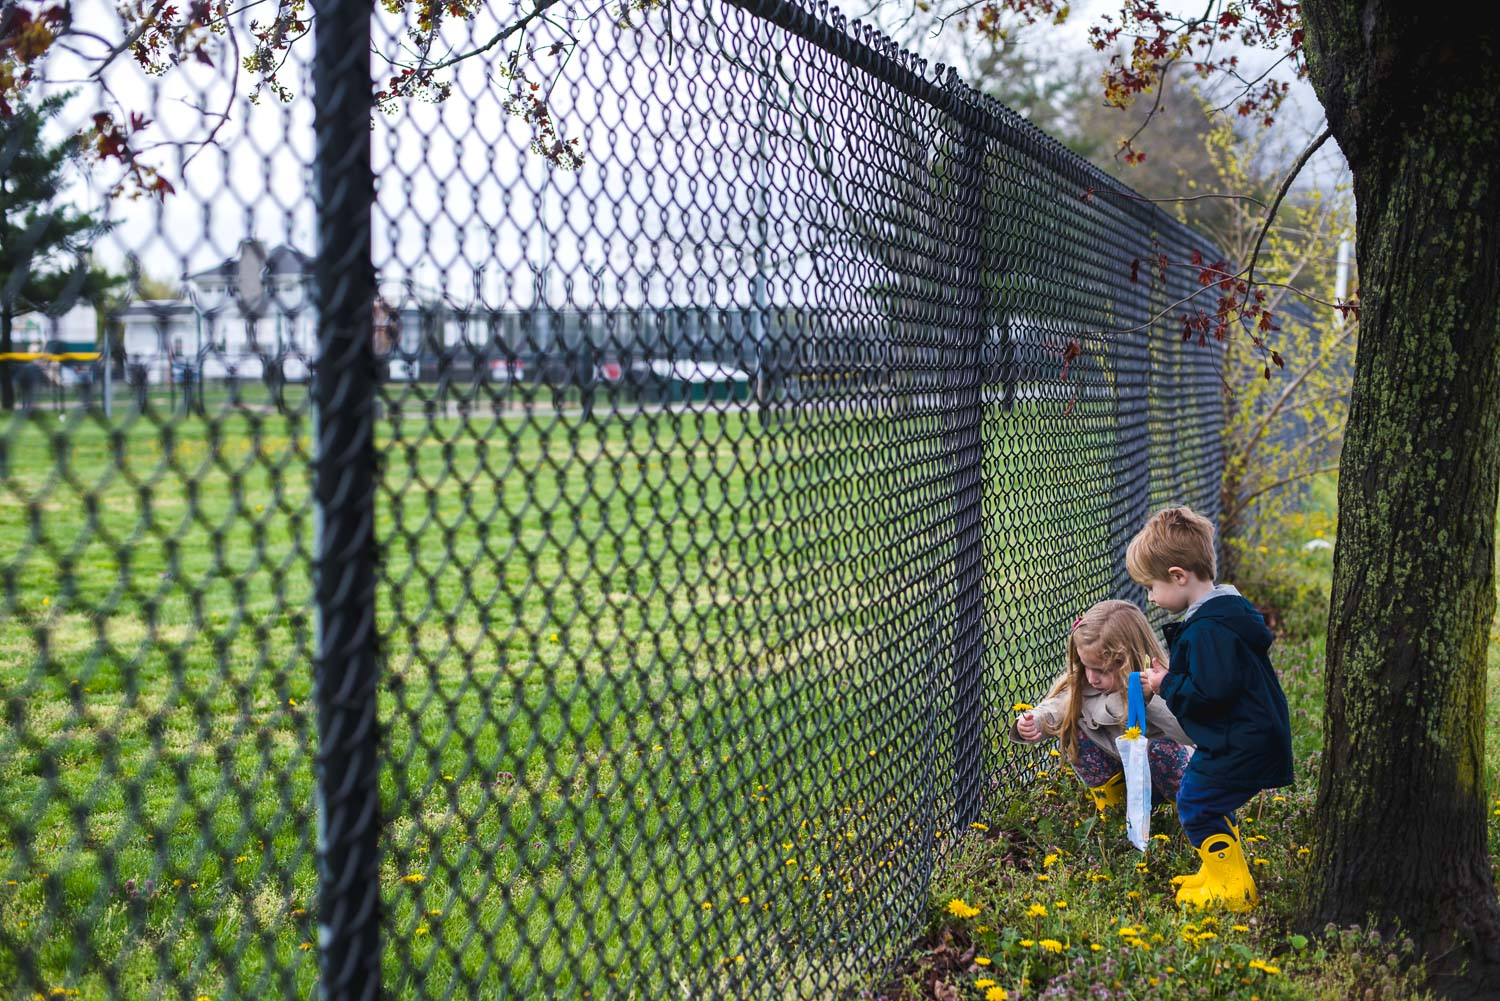 Boy and girl picking flowers along a fence.